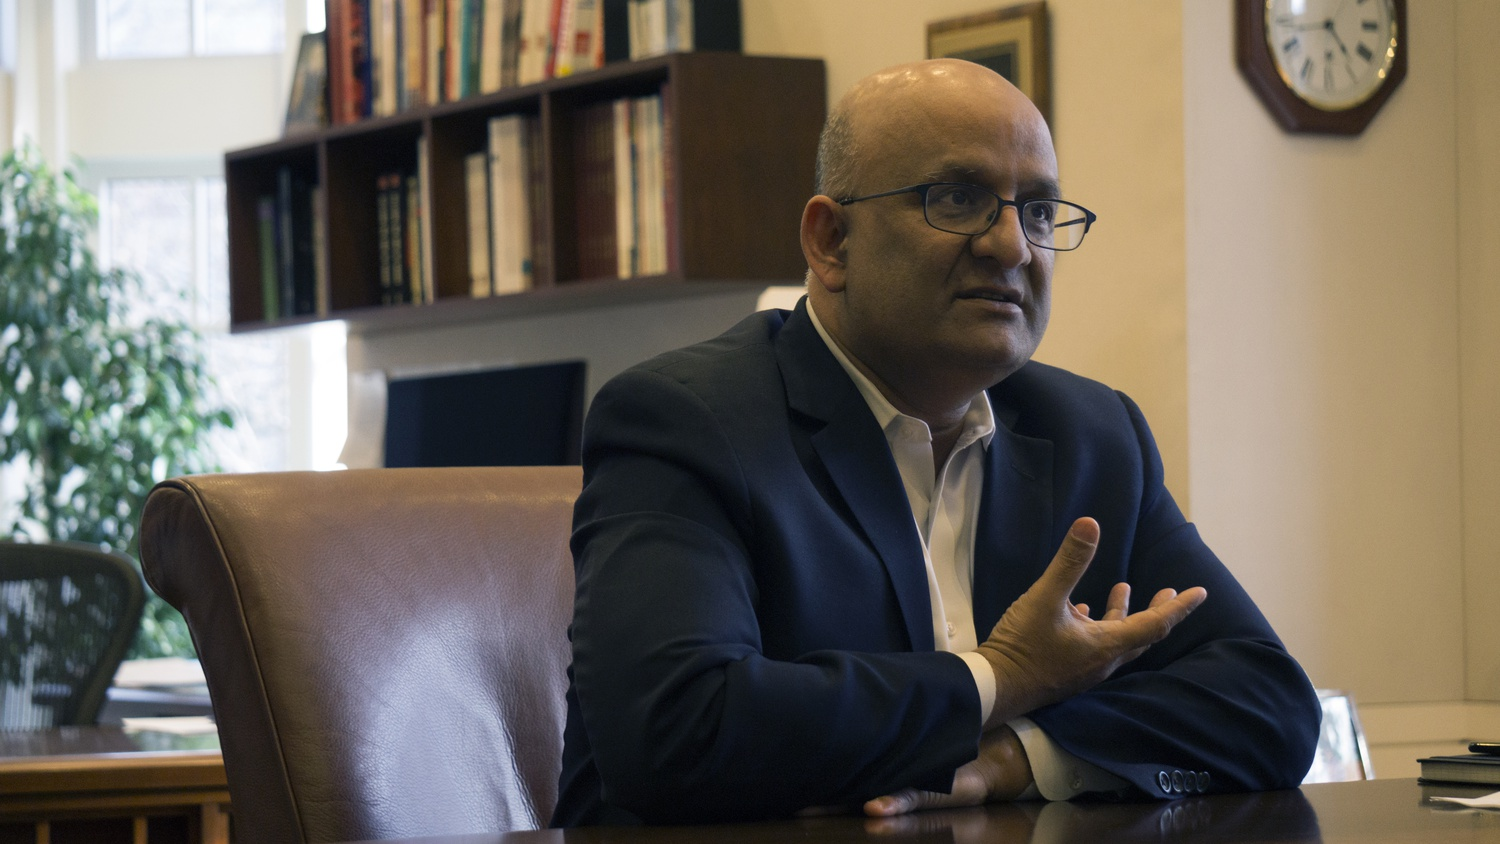 Harvard Business School Dean Nitin Nohria elaborates upon the Business School's goals in his office on Tuesday evening.